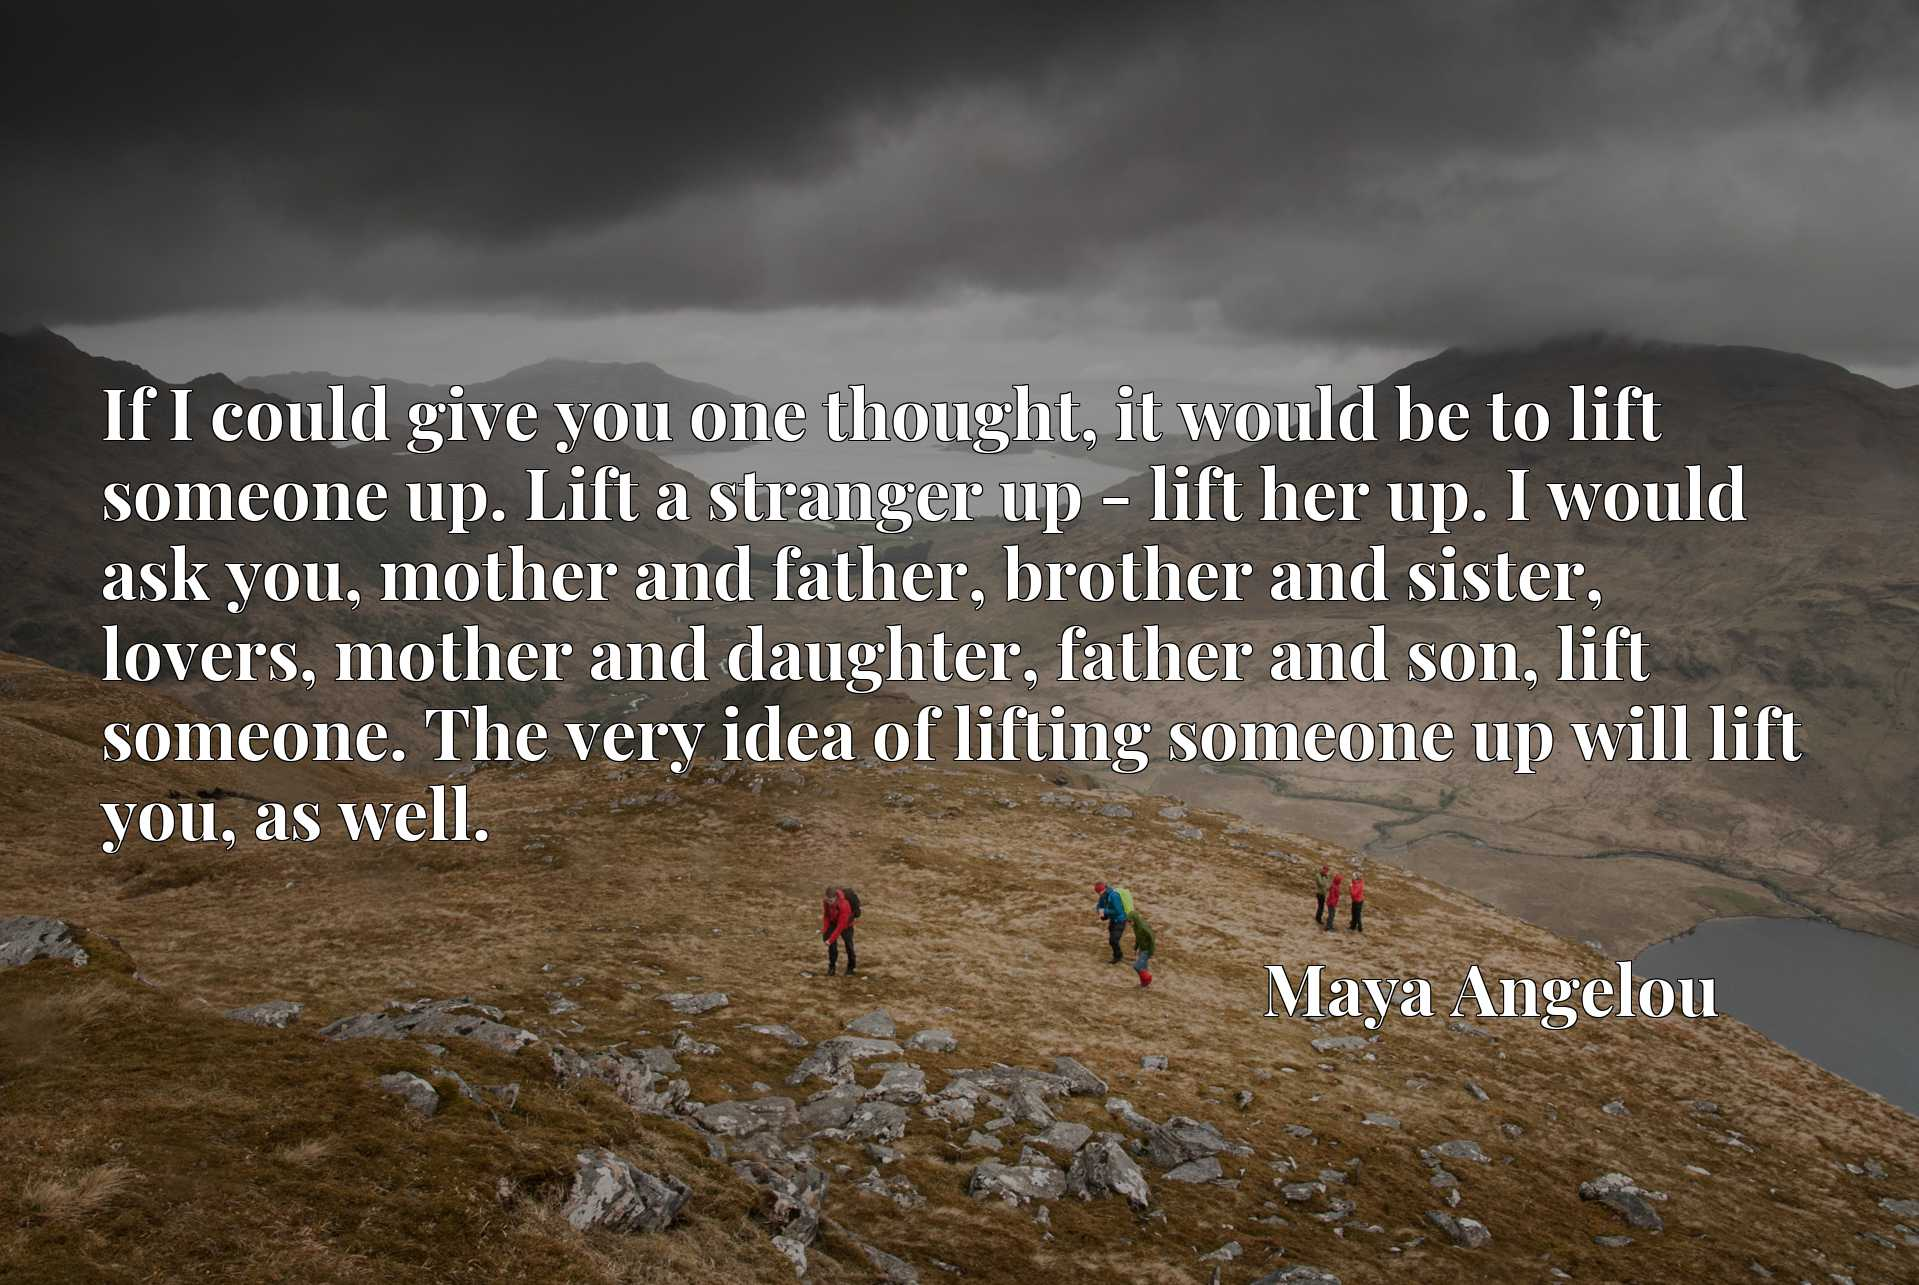 If I could give you one thought, it would be to lift someone up. Lift a stranger up - lift her up. I would ask you, mother and father, brother and sister, lovers, mother and daughter, father and son, lift someone. The very idea of lifting someone up will lift you, as well.